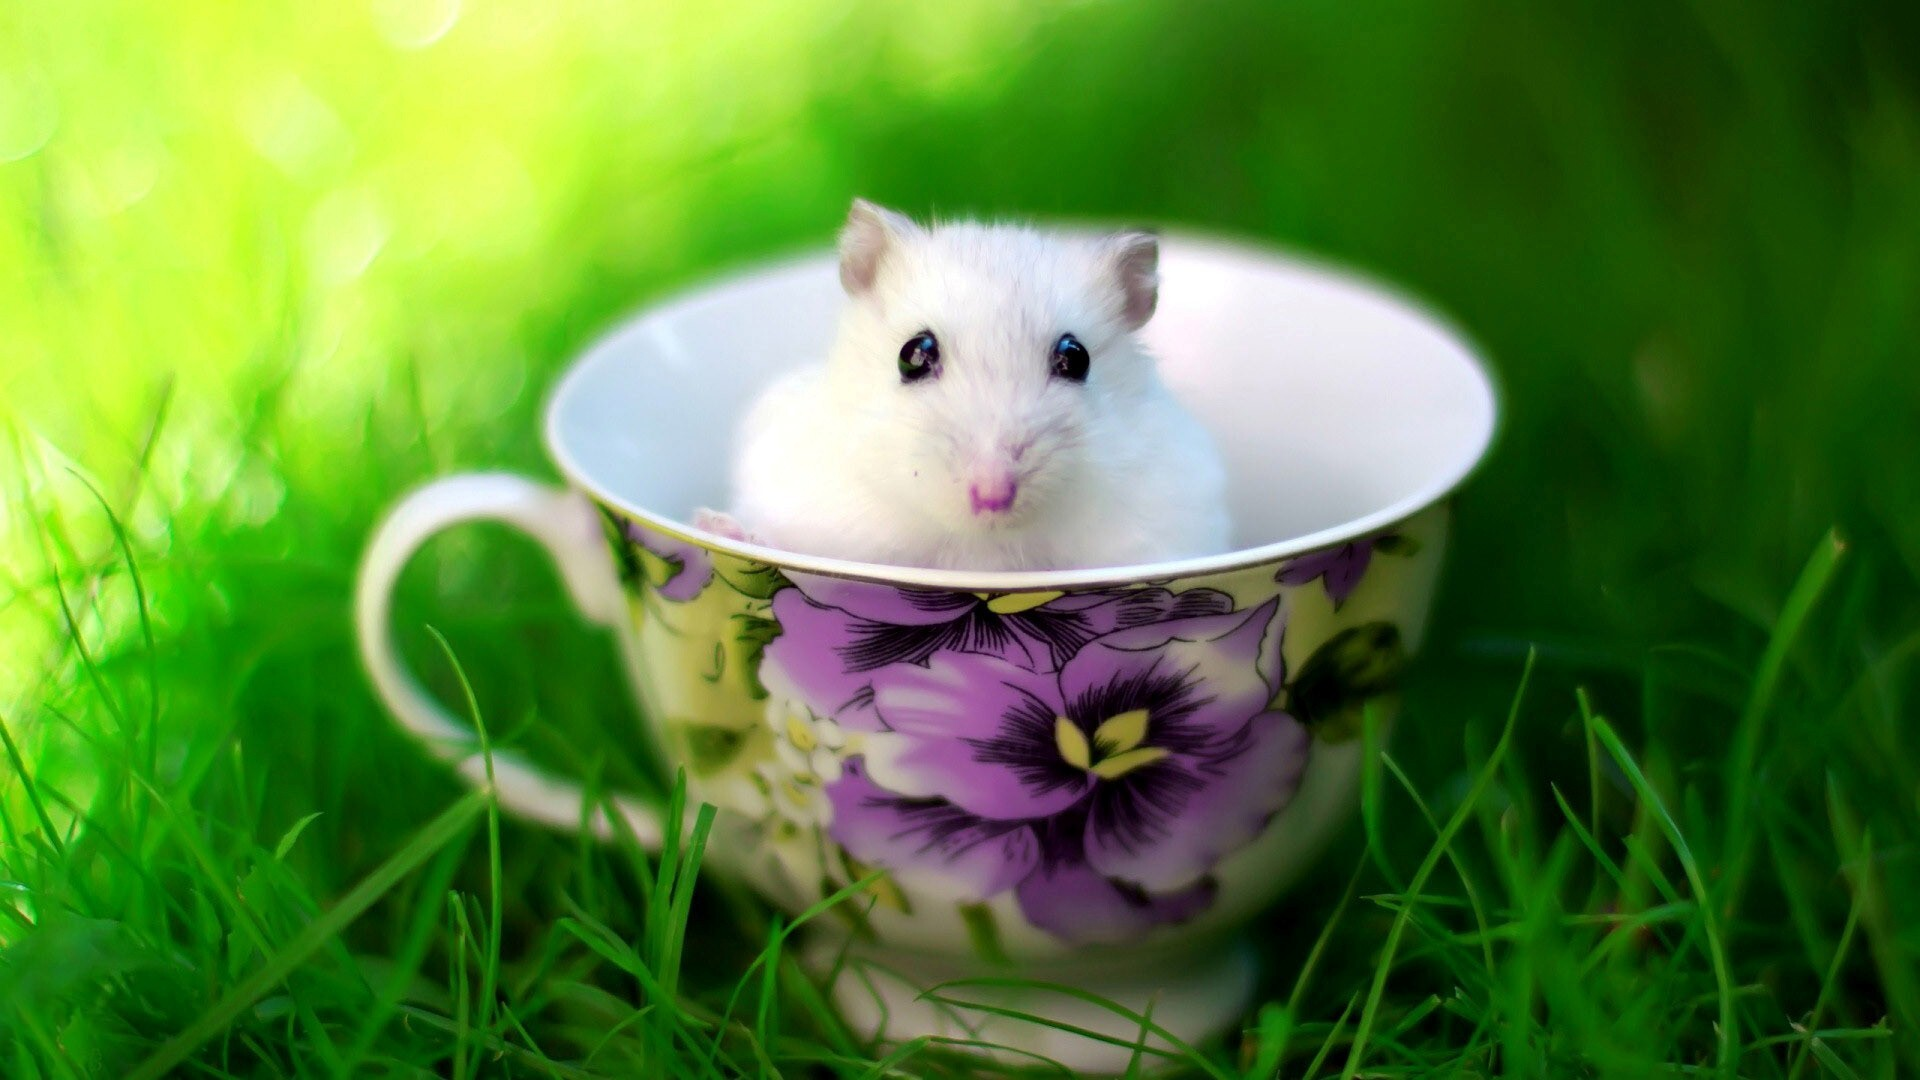 Cute white rat baby in cup hd wallpapers - Free funny animal screensavers ...